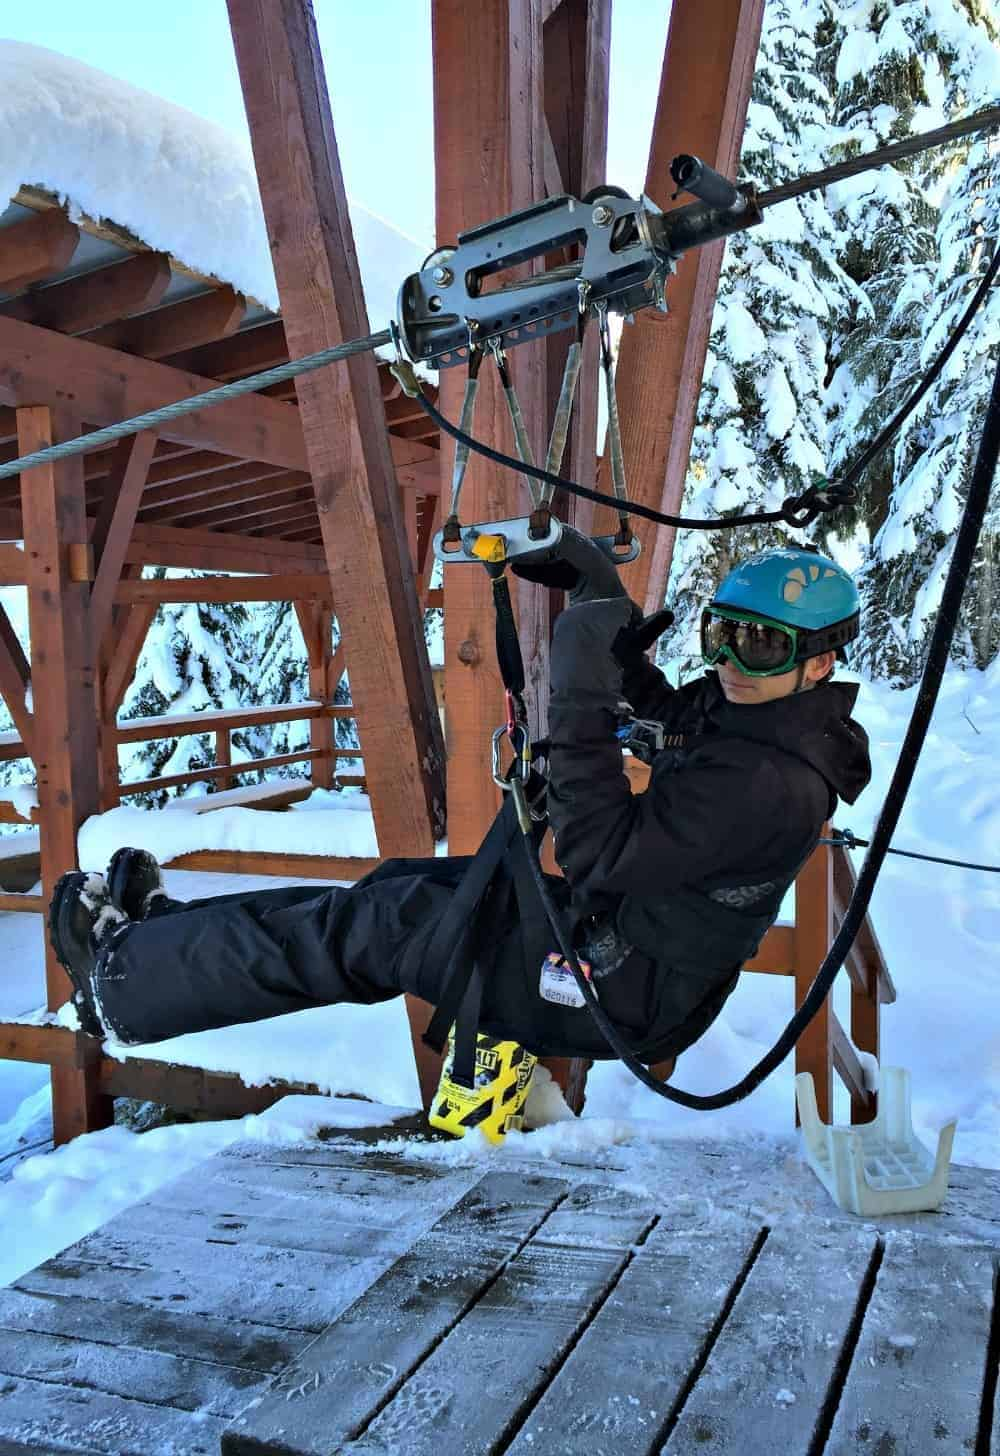 Getting a new adventurous perspective on life by zip lining in the mountains of Whistler for the Ford Bucket List Challenge.